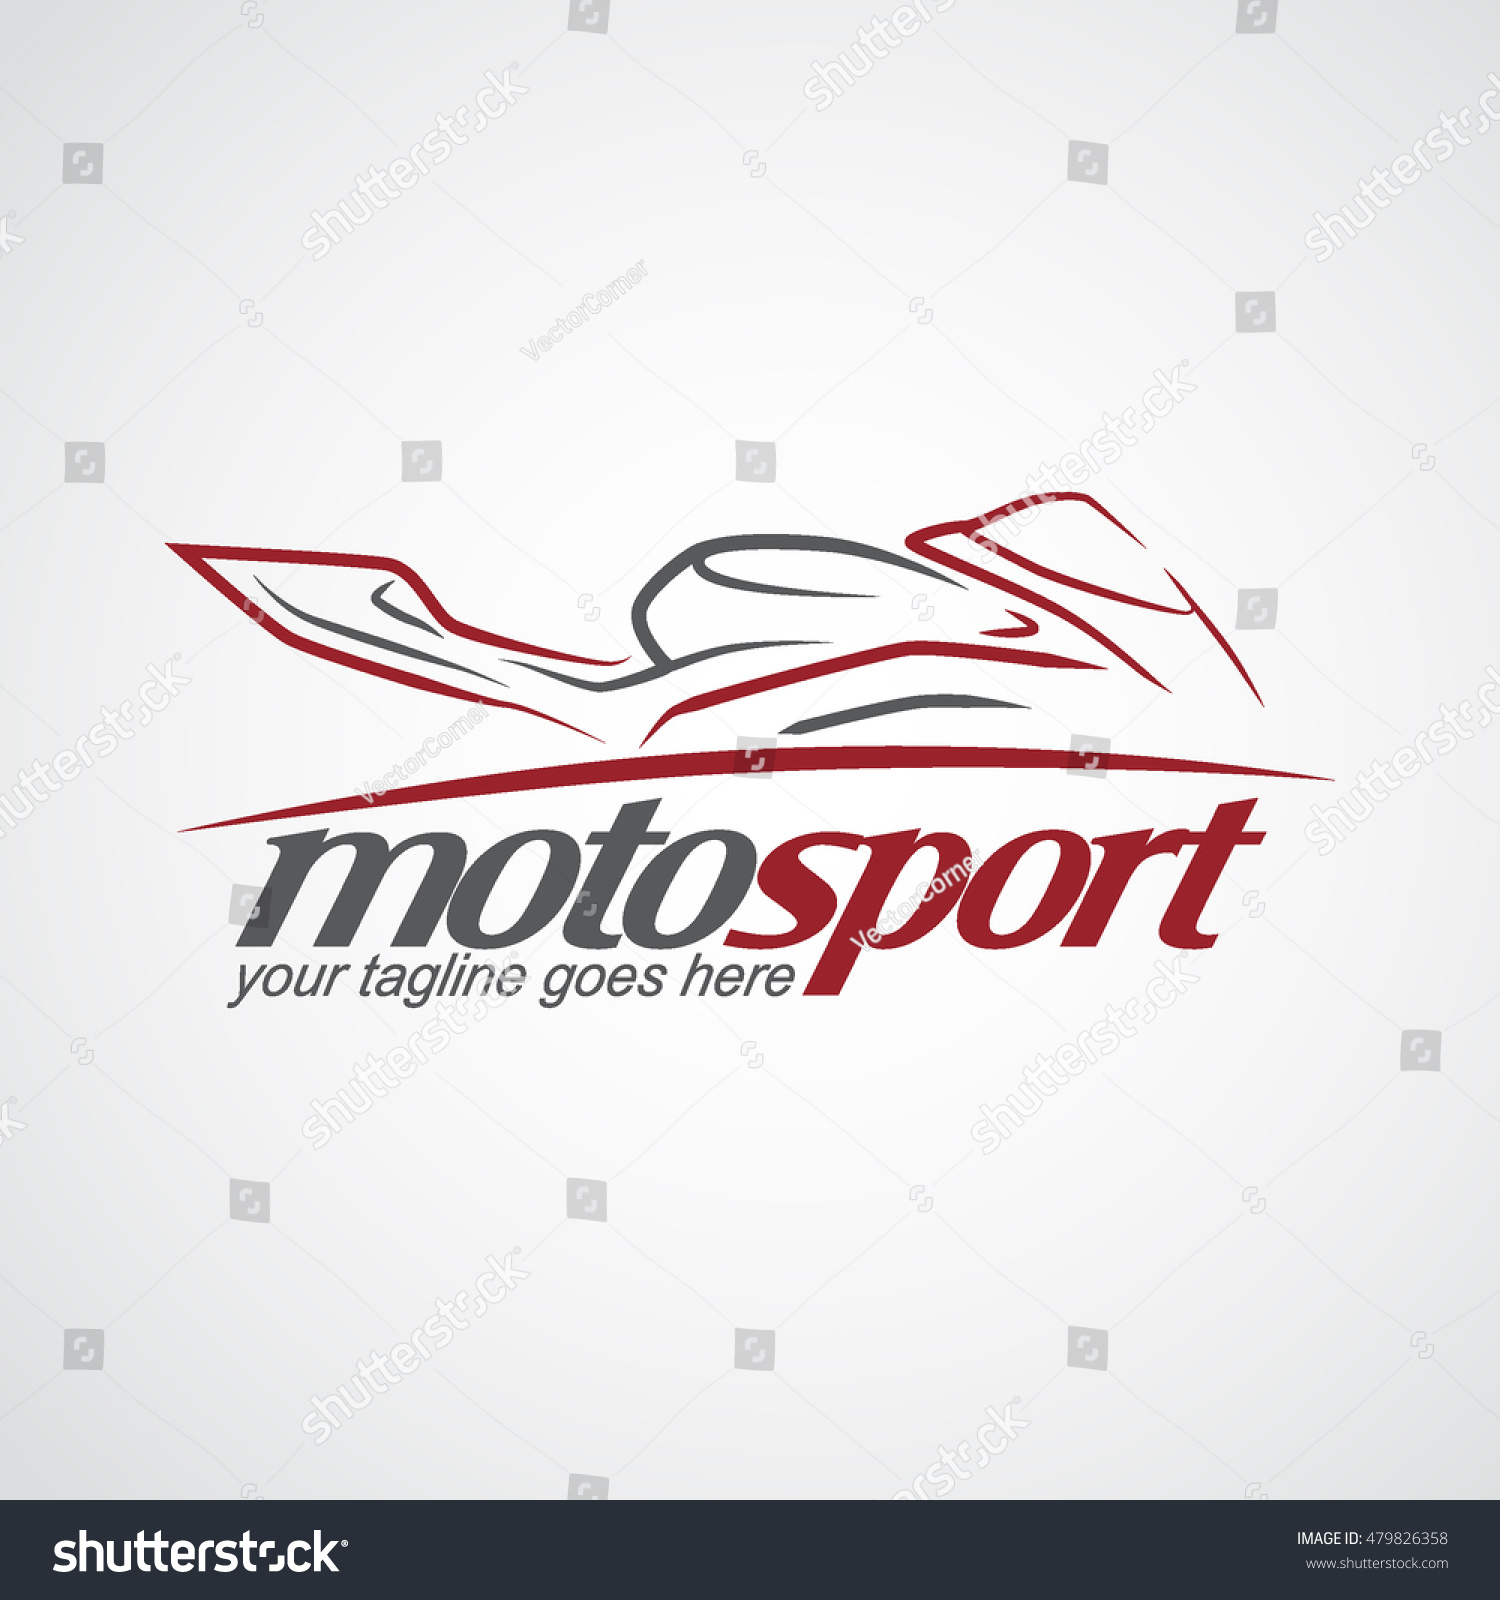 Motosport templates 28 images fox racing 2017 flexair for Motosport templates